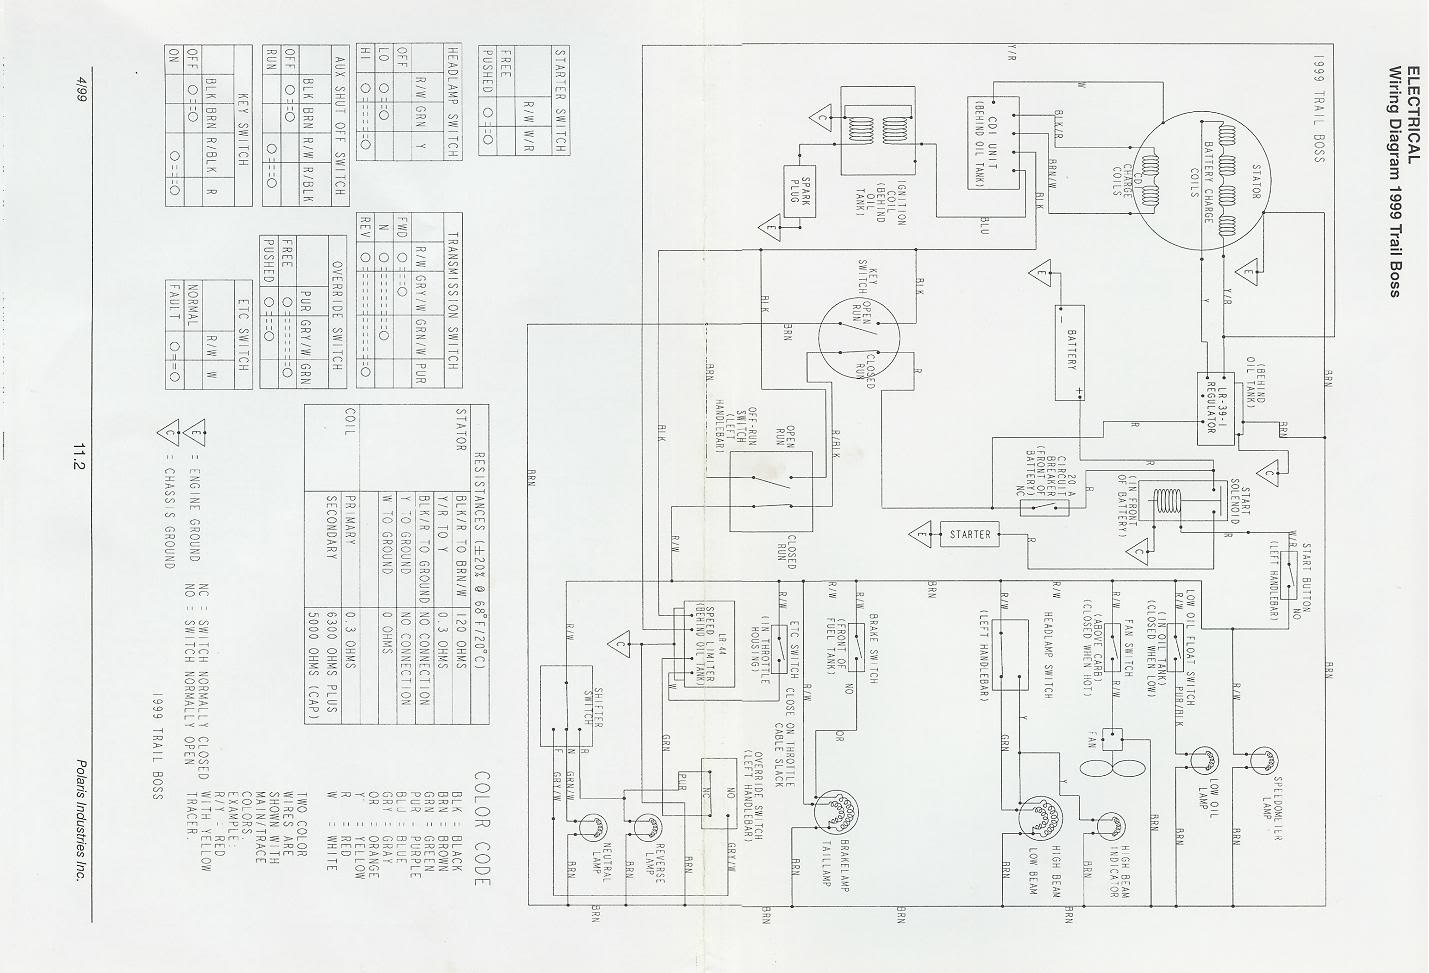 wiring diagram 2001 polaris 250